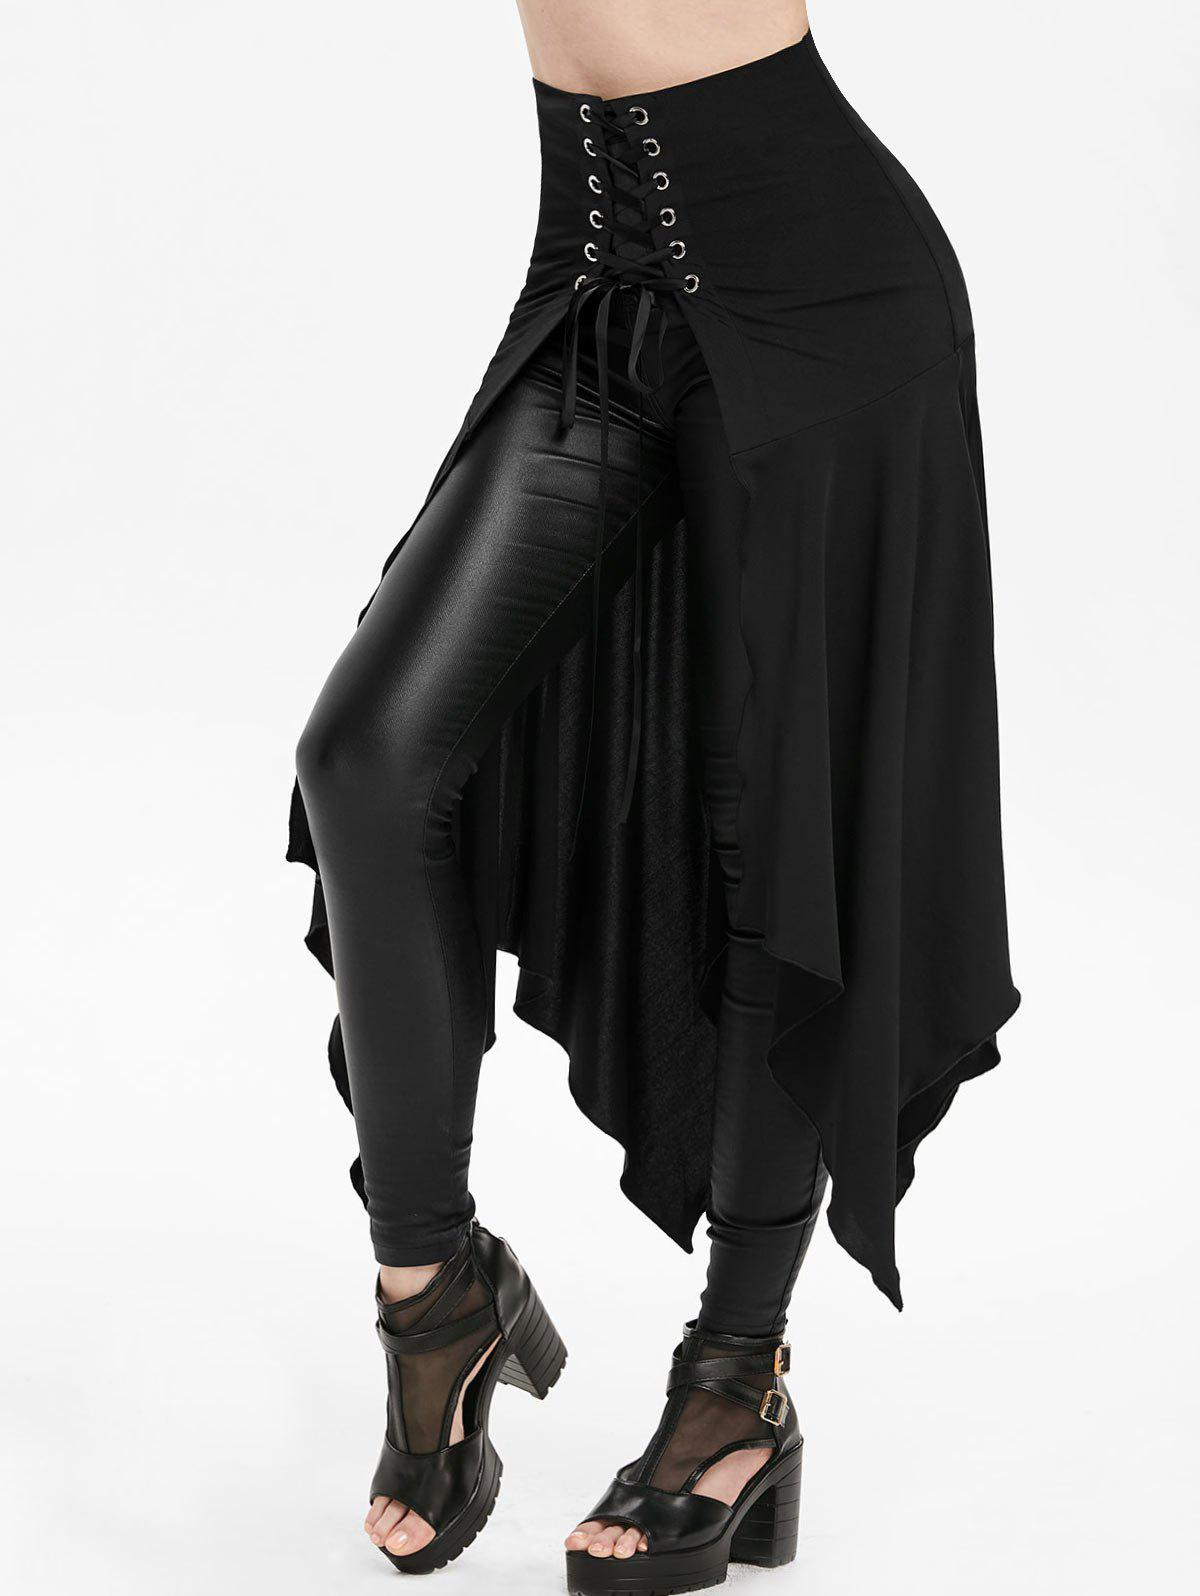 Asymmetric Lace-up Slit Front Skirt - BLACK 3XL